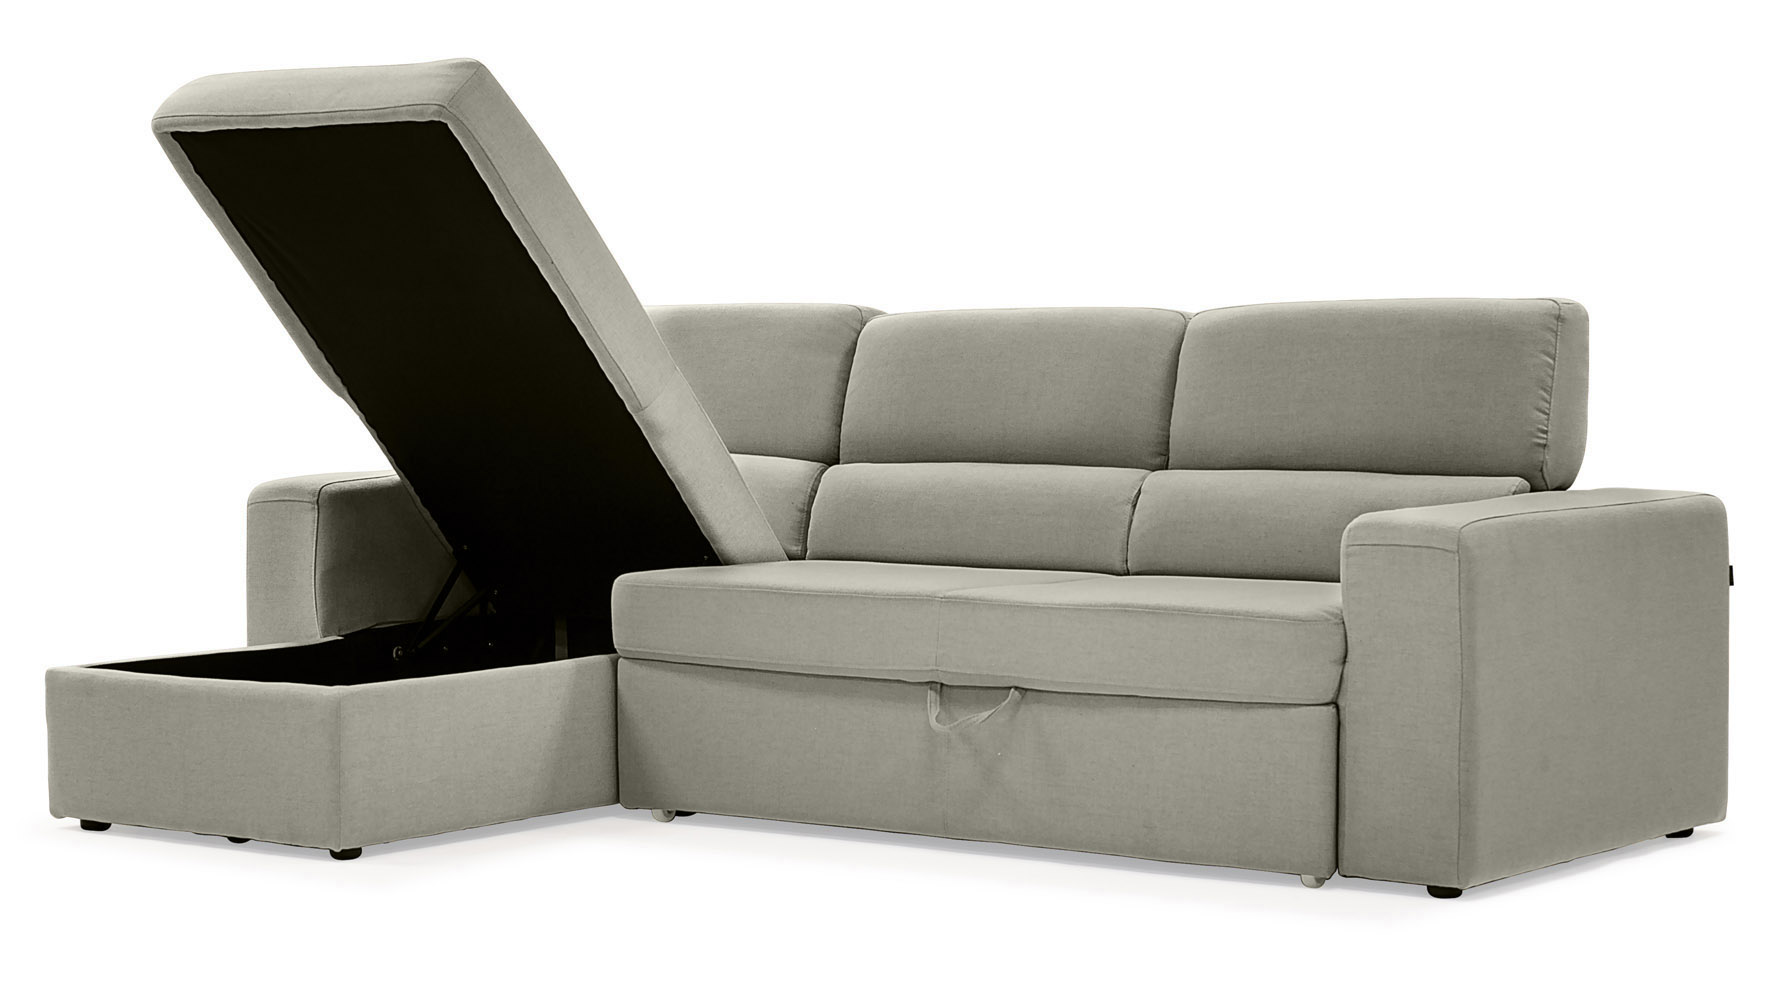 clubber sofa bed repair in noida sector 62 light gray sleeper sectional zuri furniture next